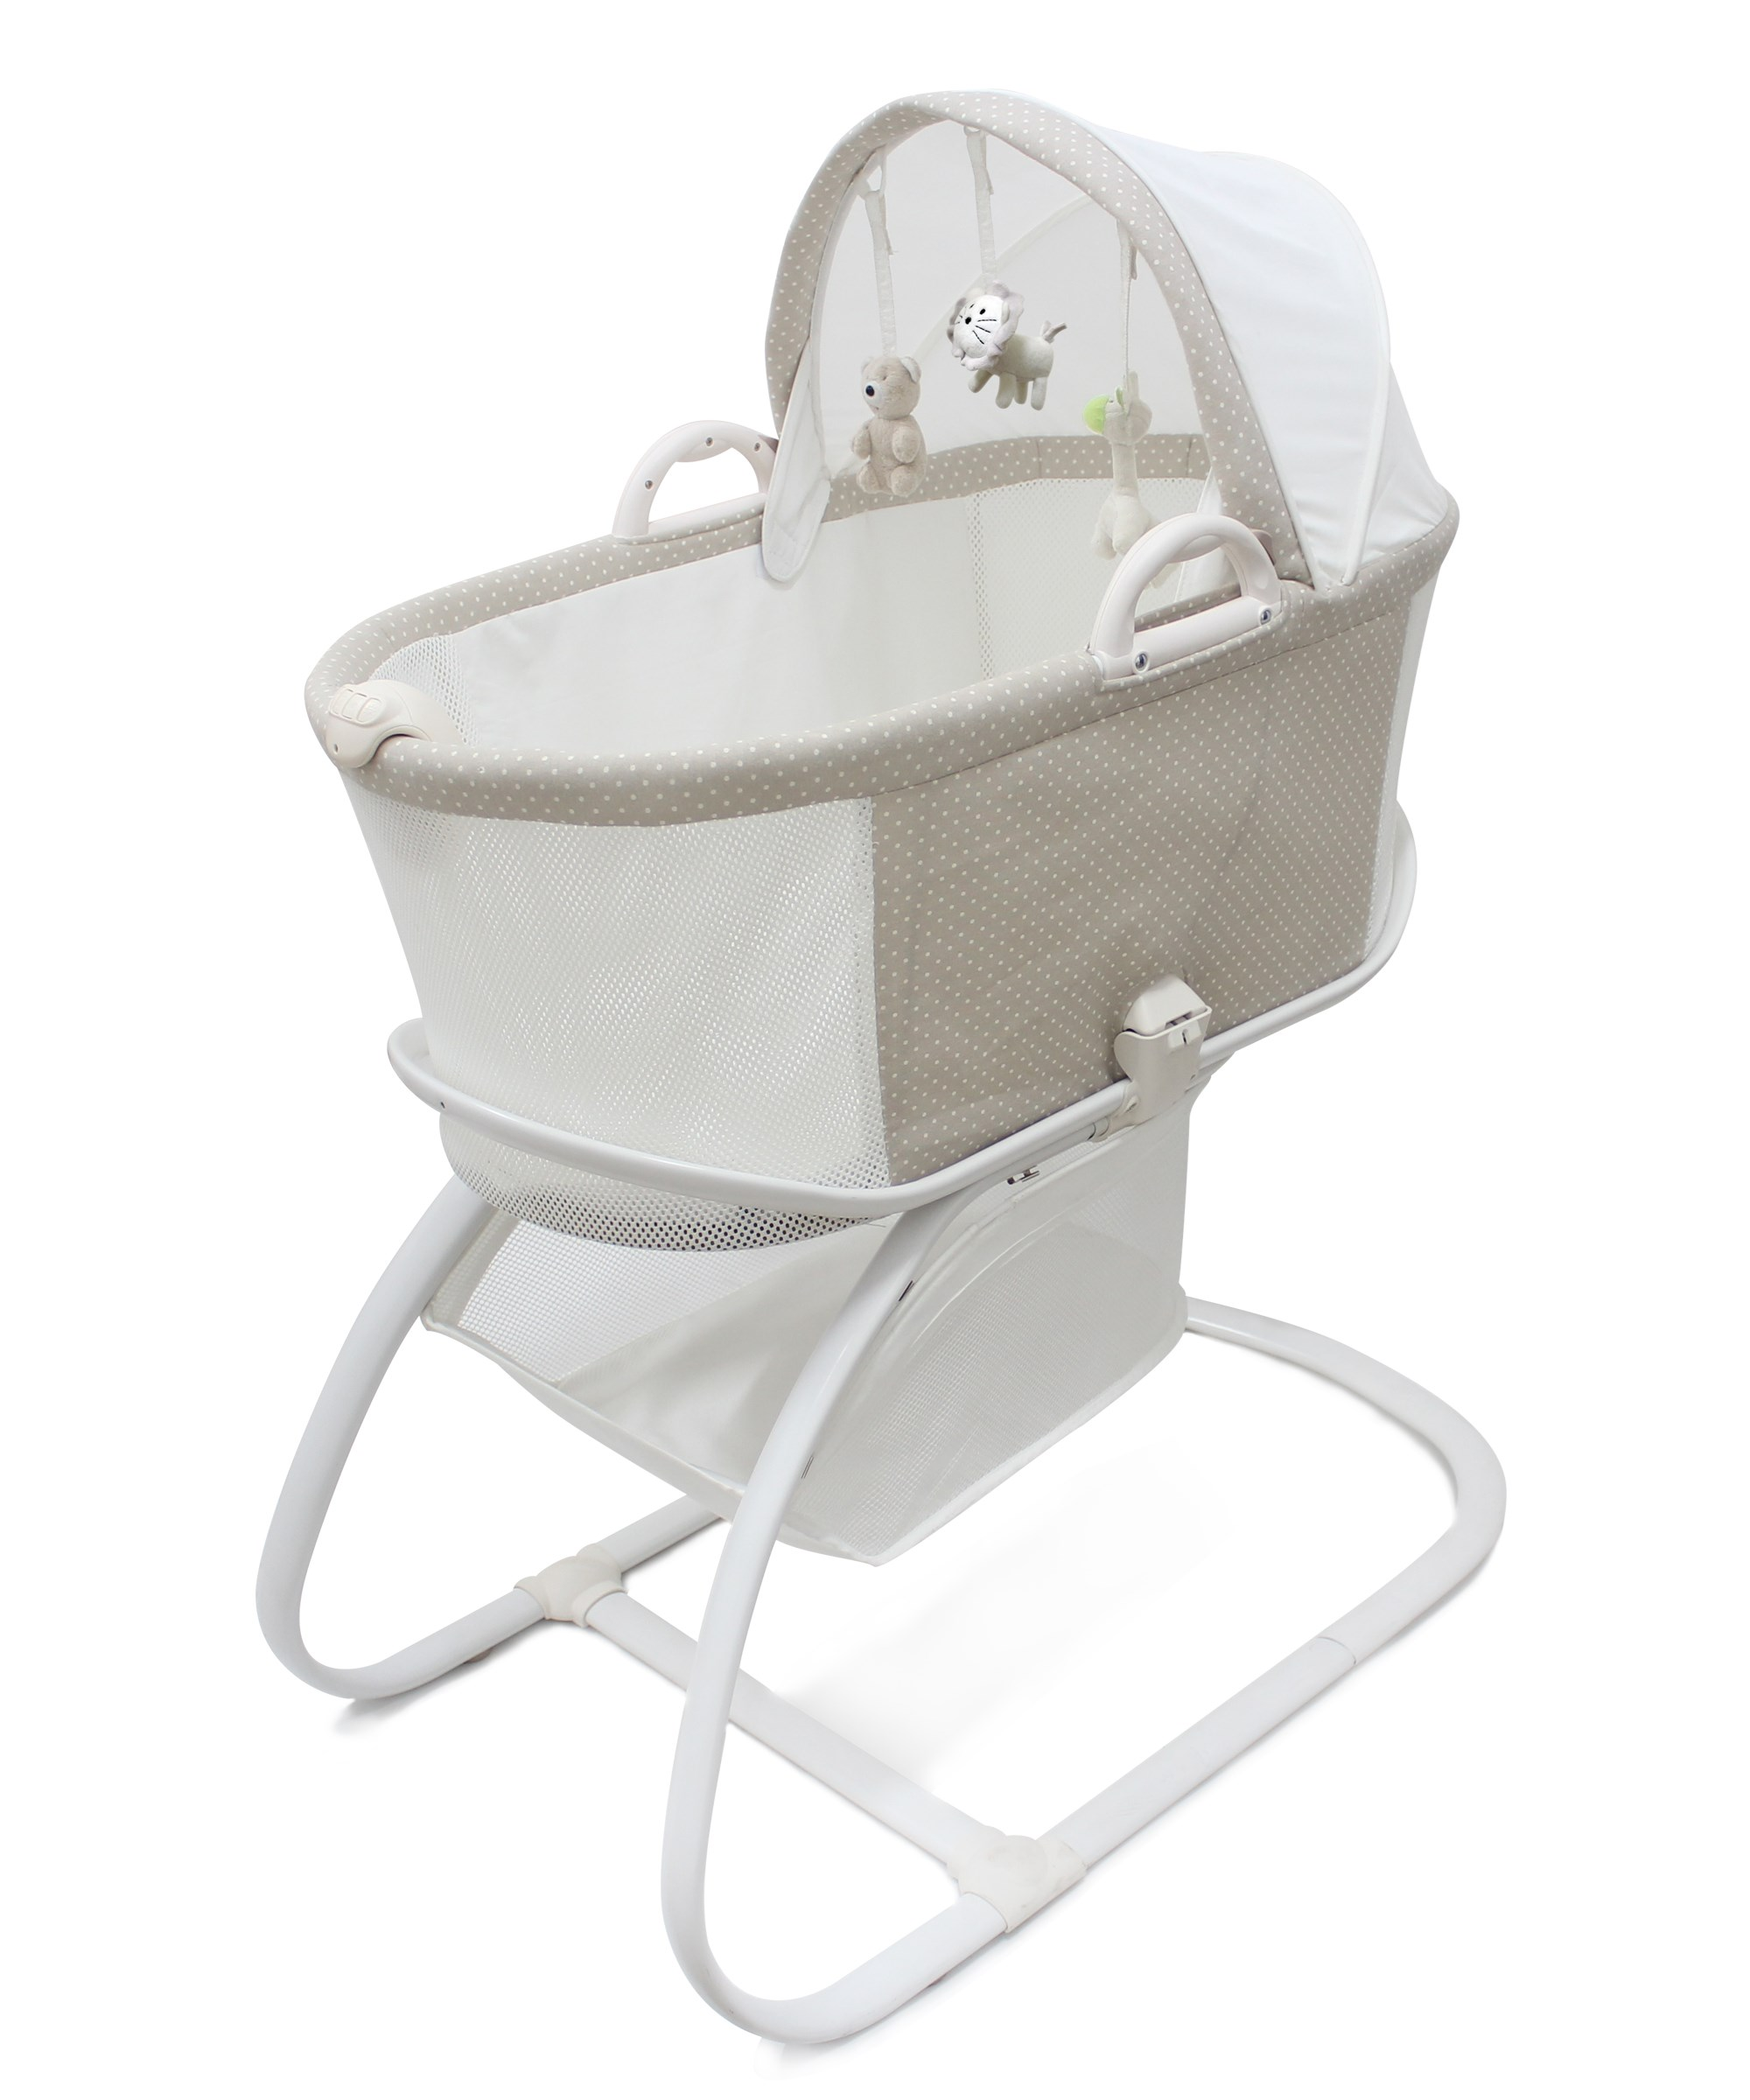 PurFlo Breathable Bassinet in Soft Truffle